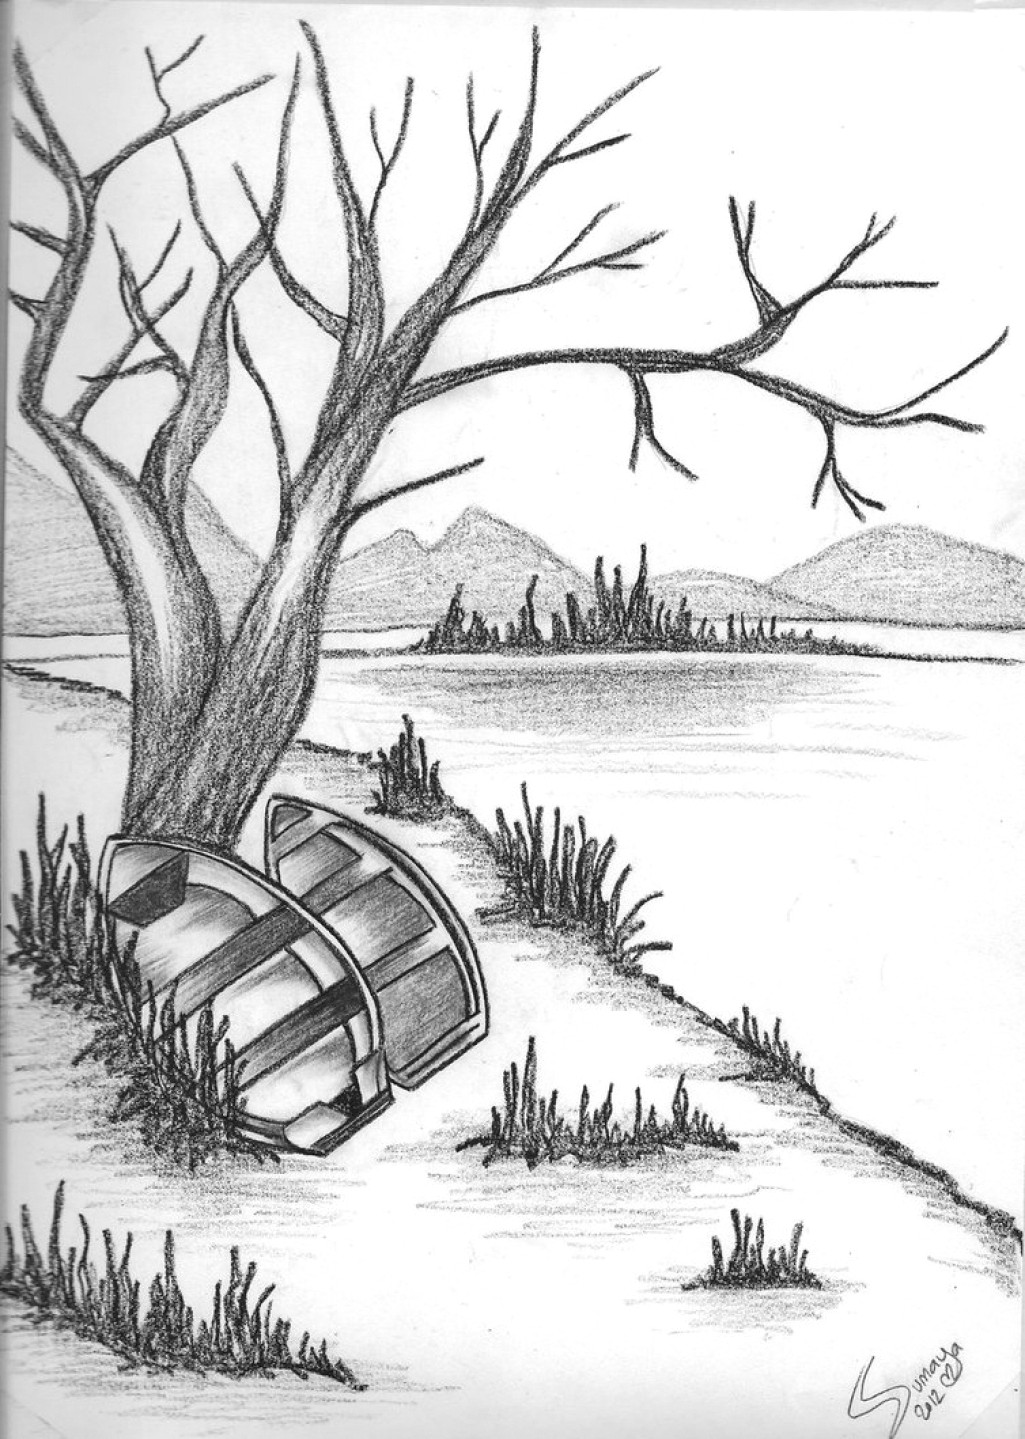 1025x1439 nature drawings easy village nature scenery drawingeasy tutorial nature sketch for kids